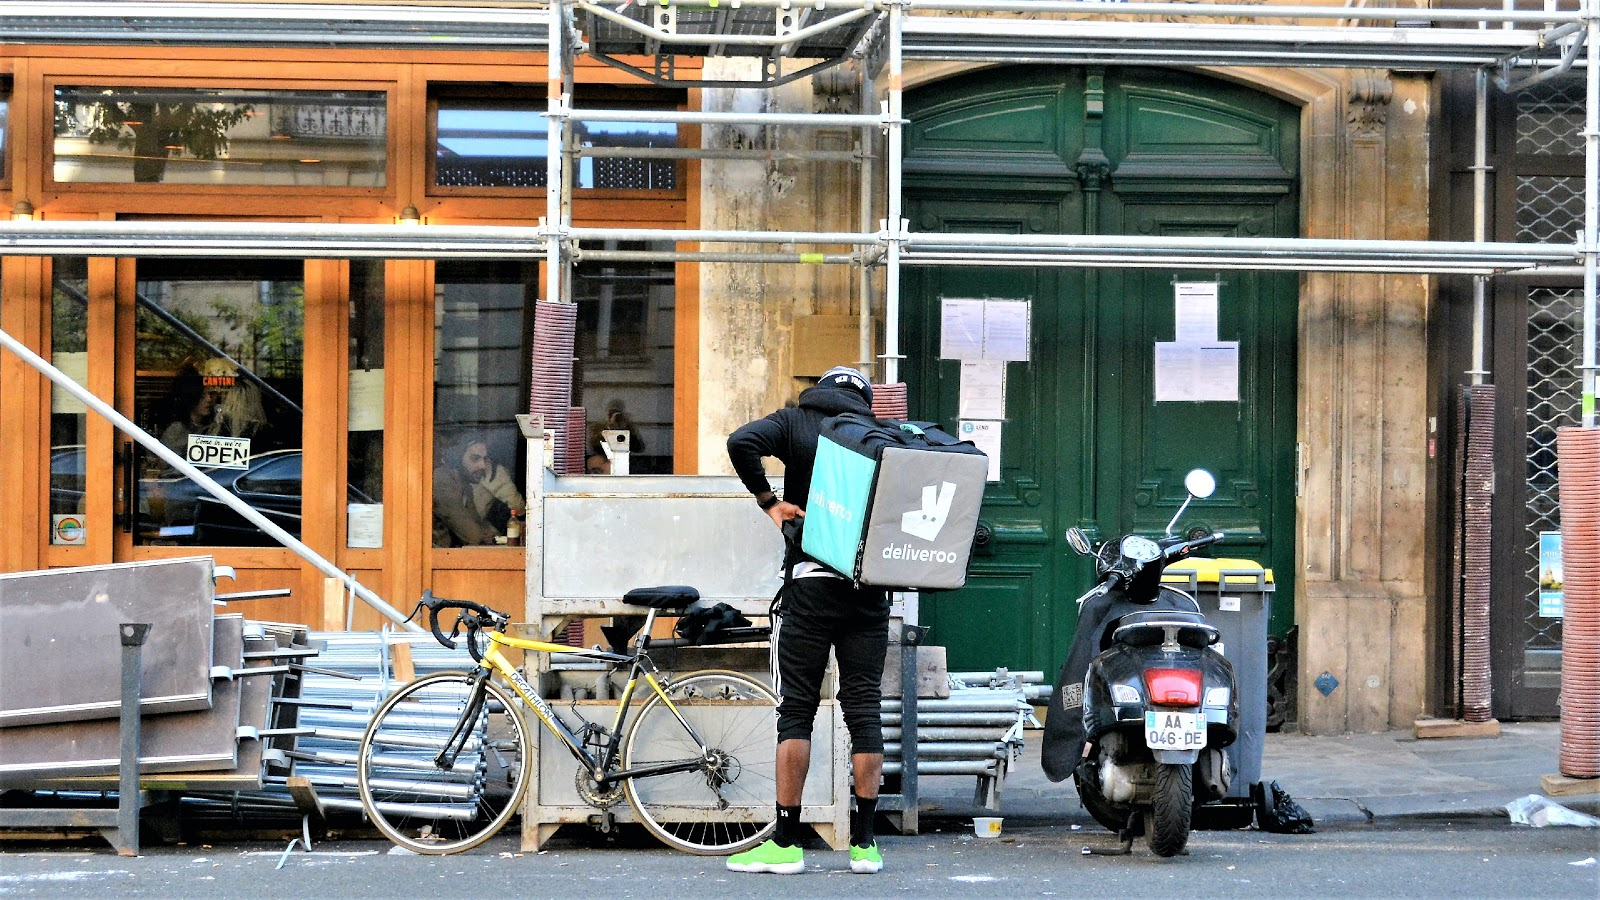 Image of bicycle delivery worker